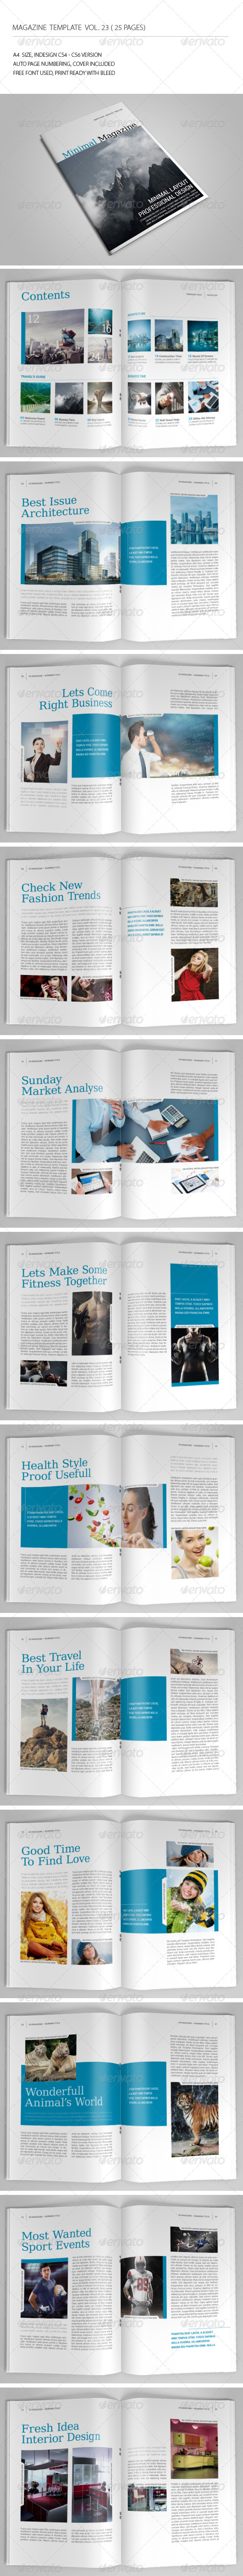 25 Pages Minimal Magazine Vol23 - Magazines Print Templates